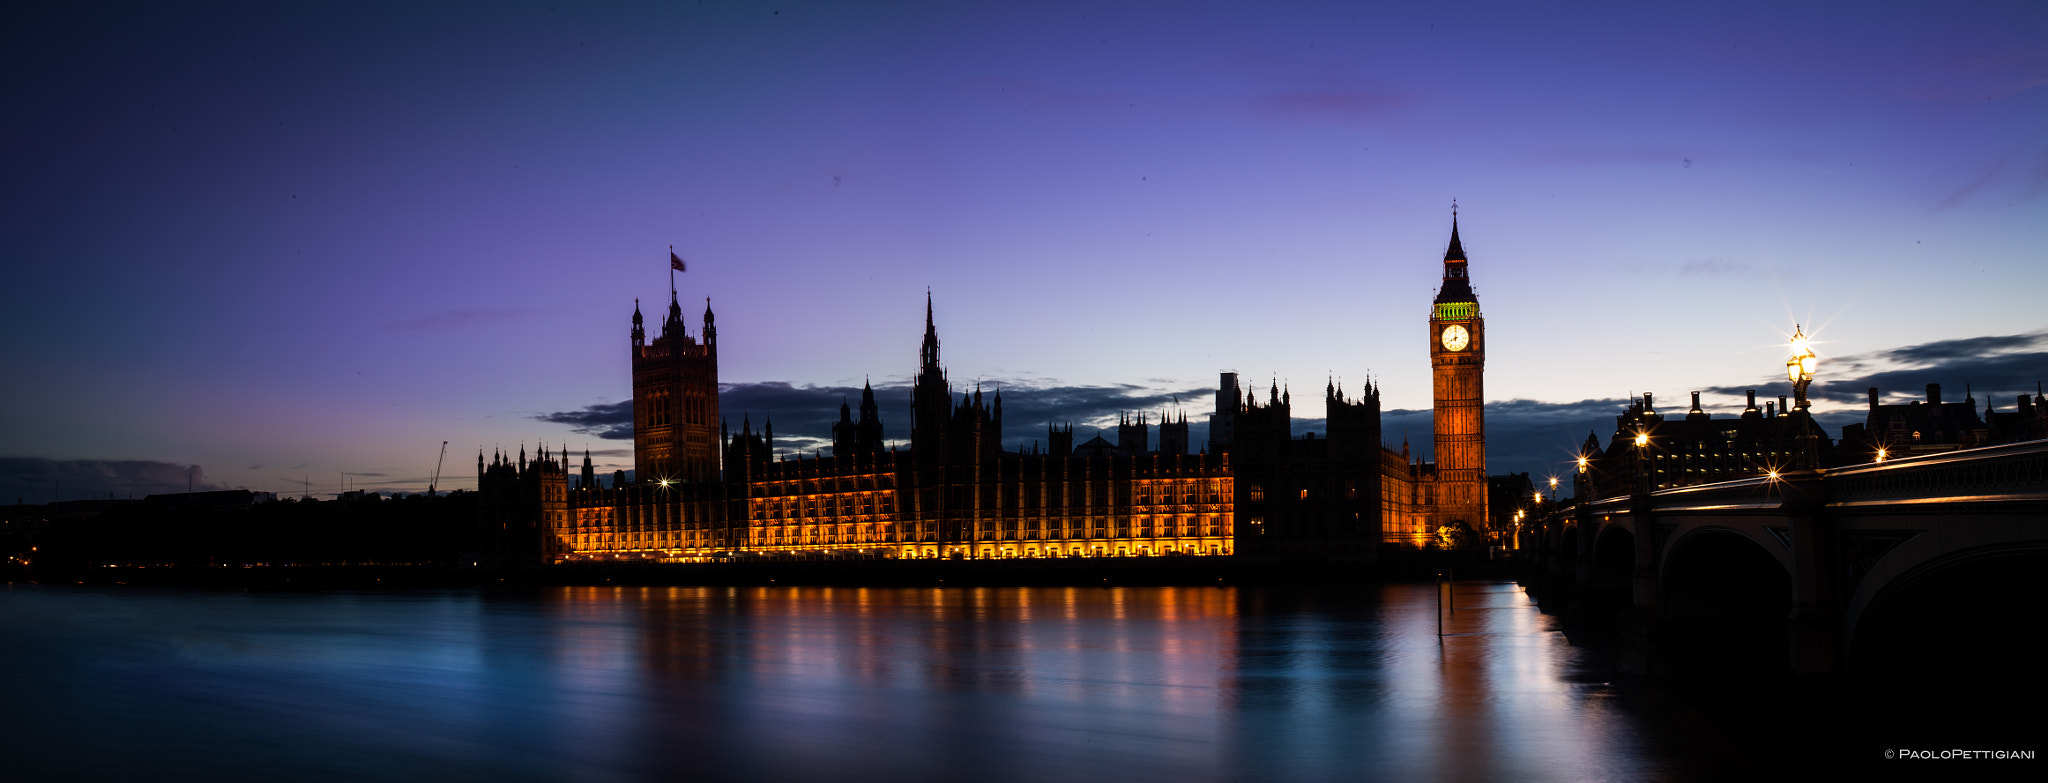 Photograph Big Ben - panorama by Paolo Pettigiani on 500px